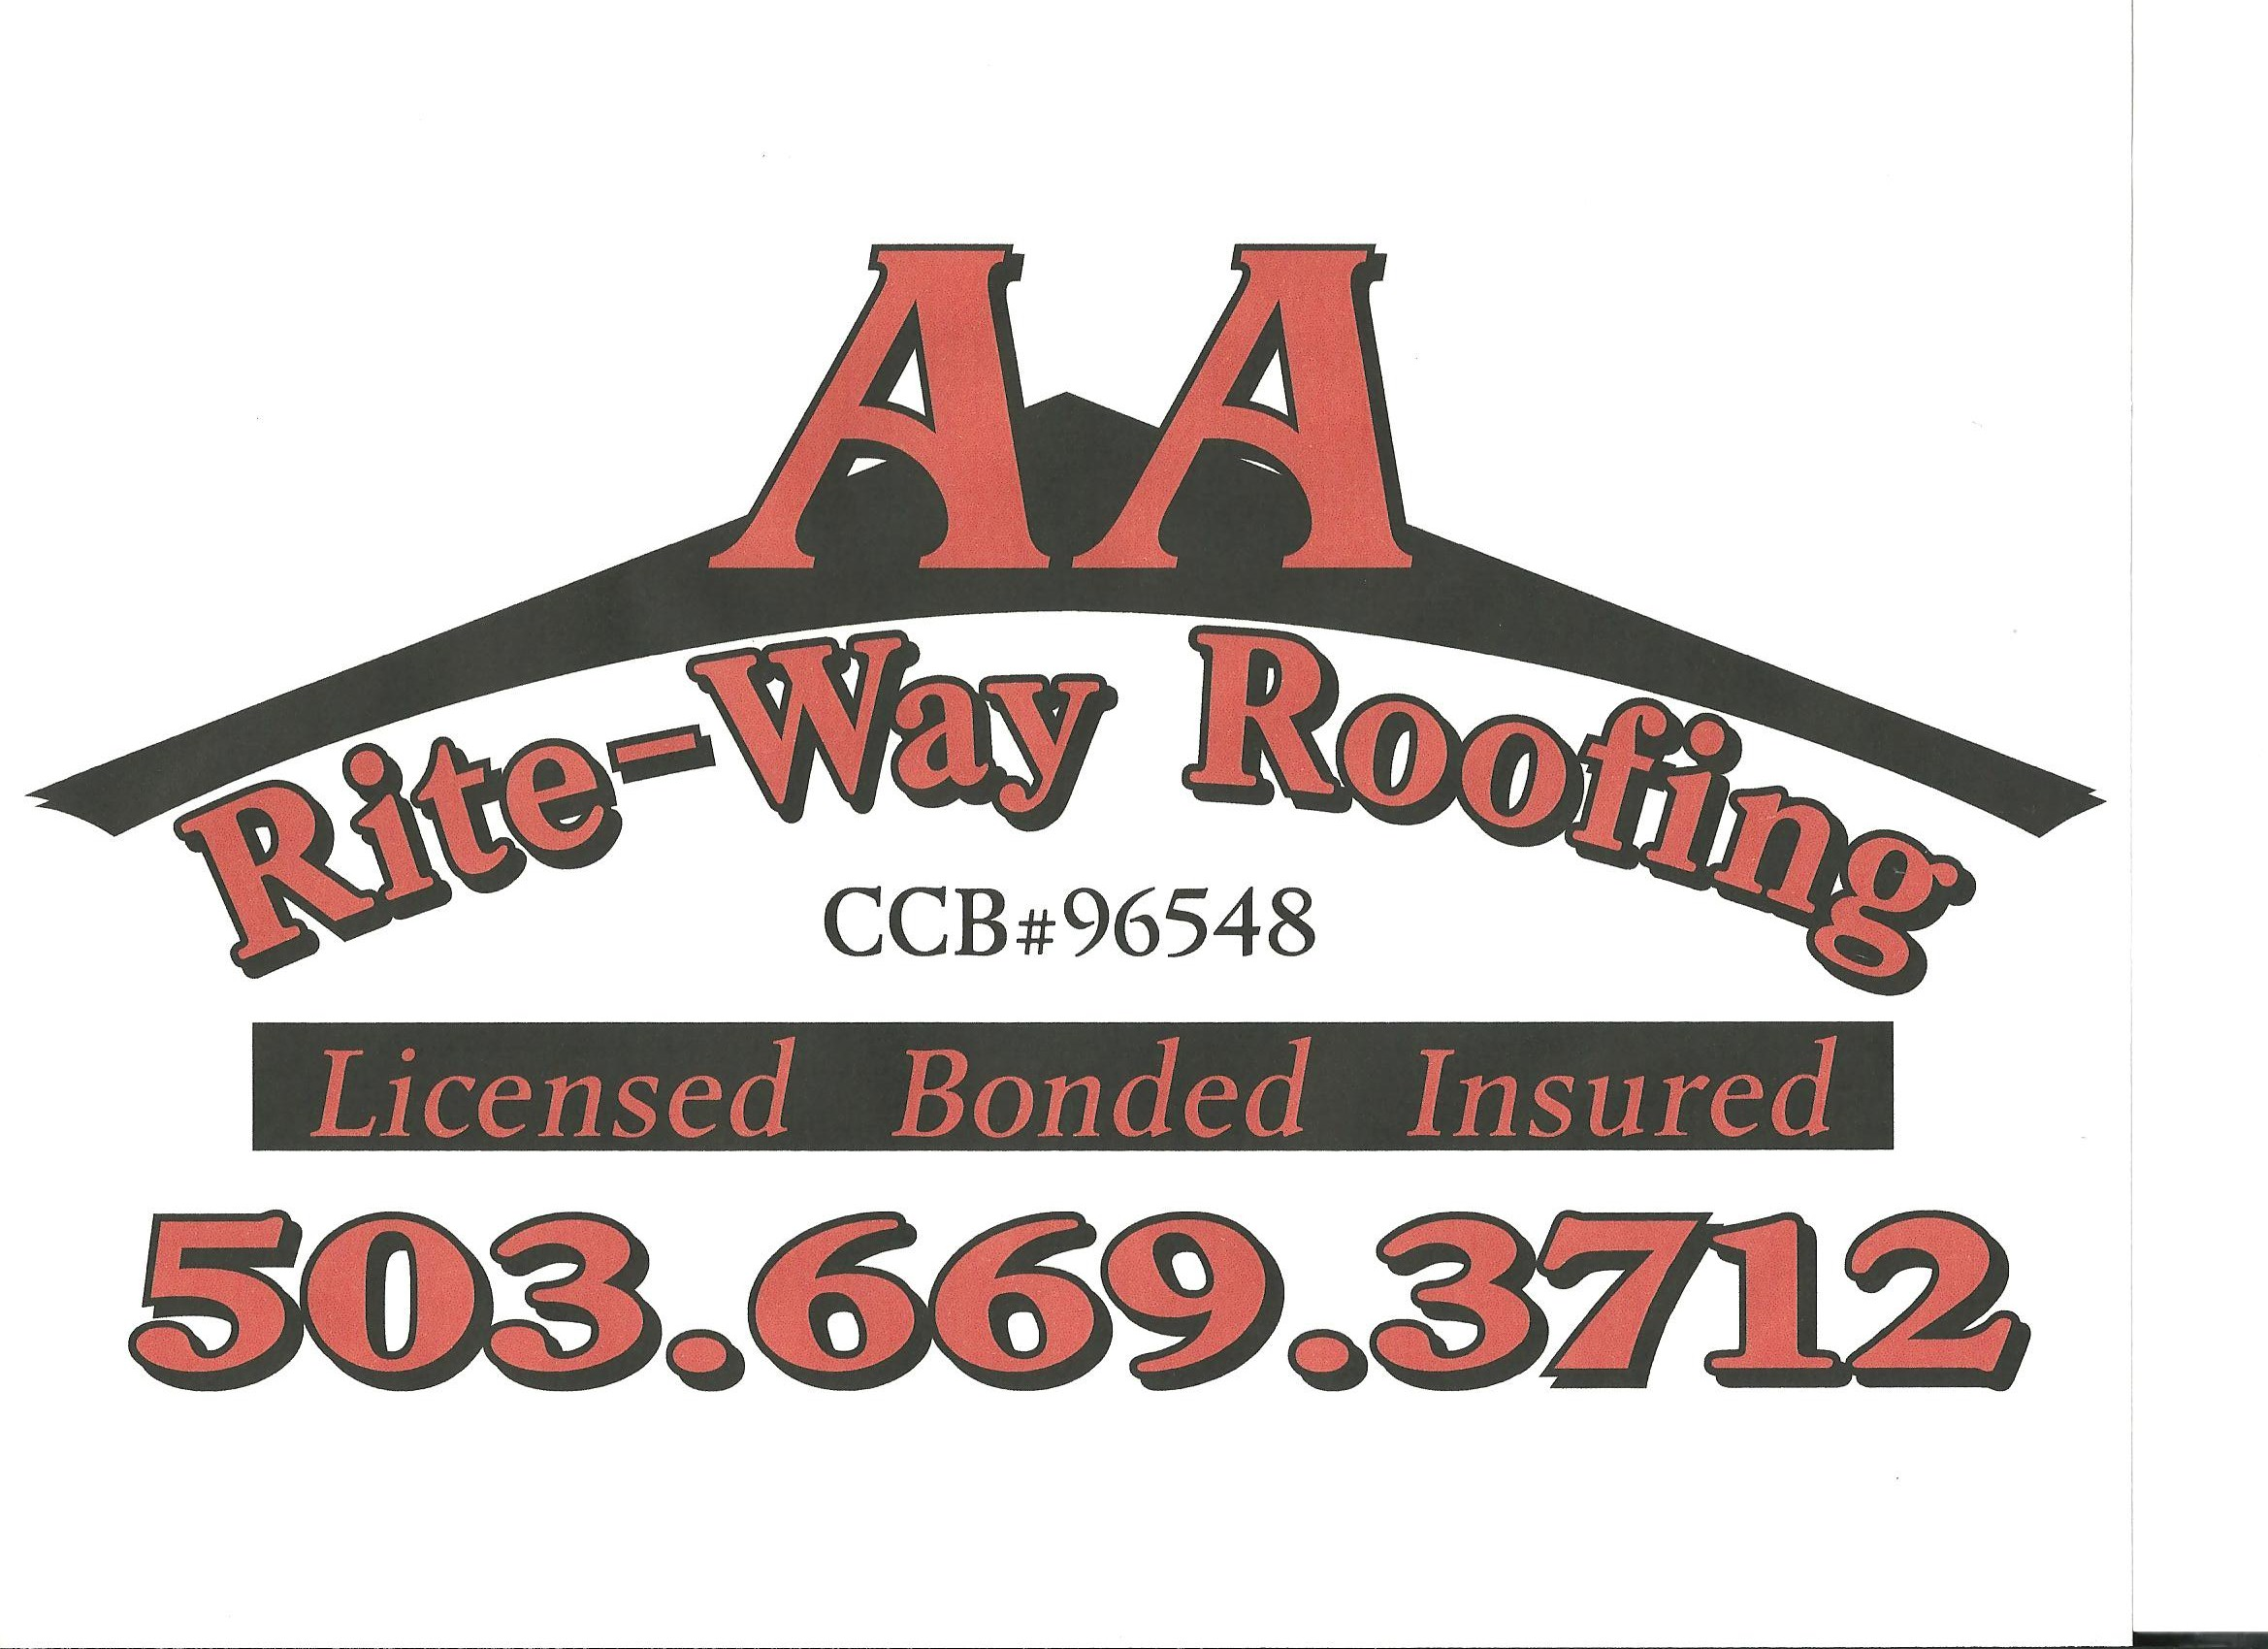 AA RITE-WAY ROOFING